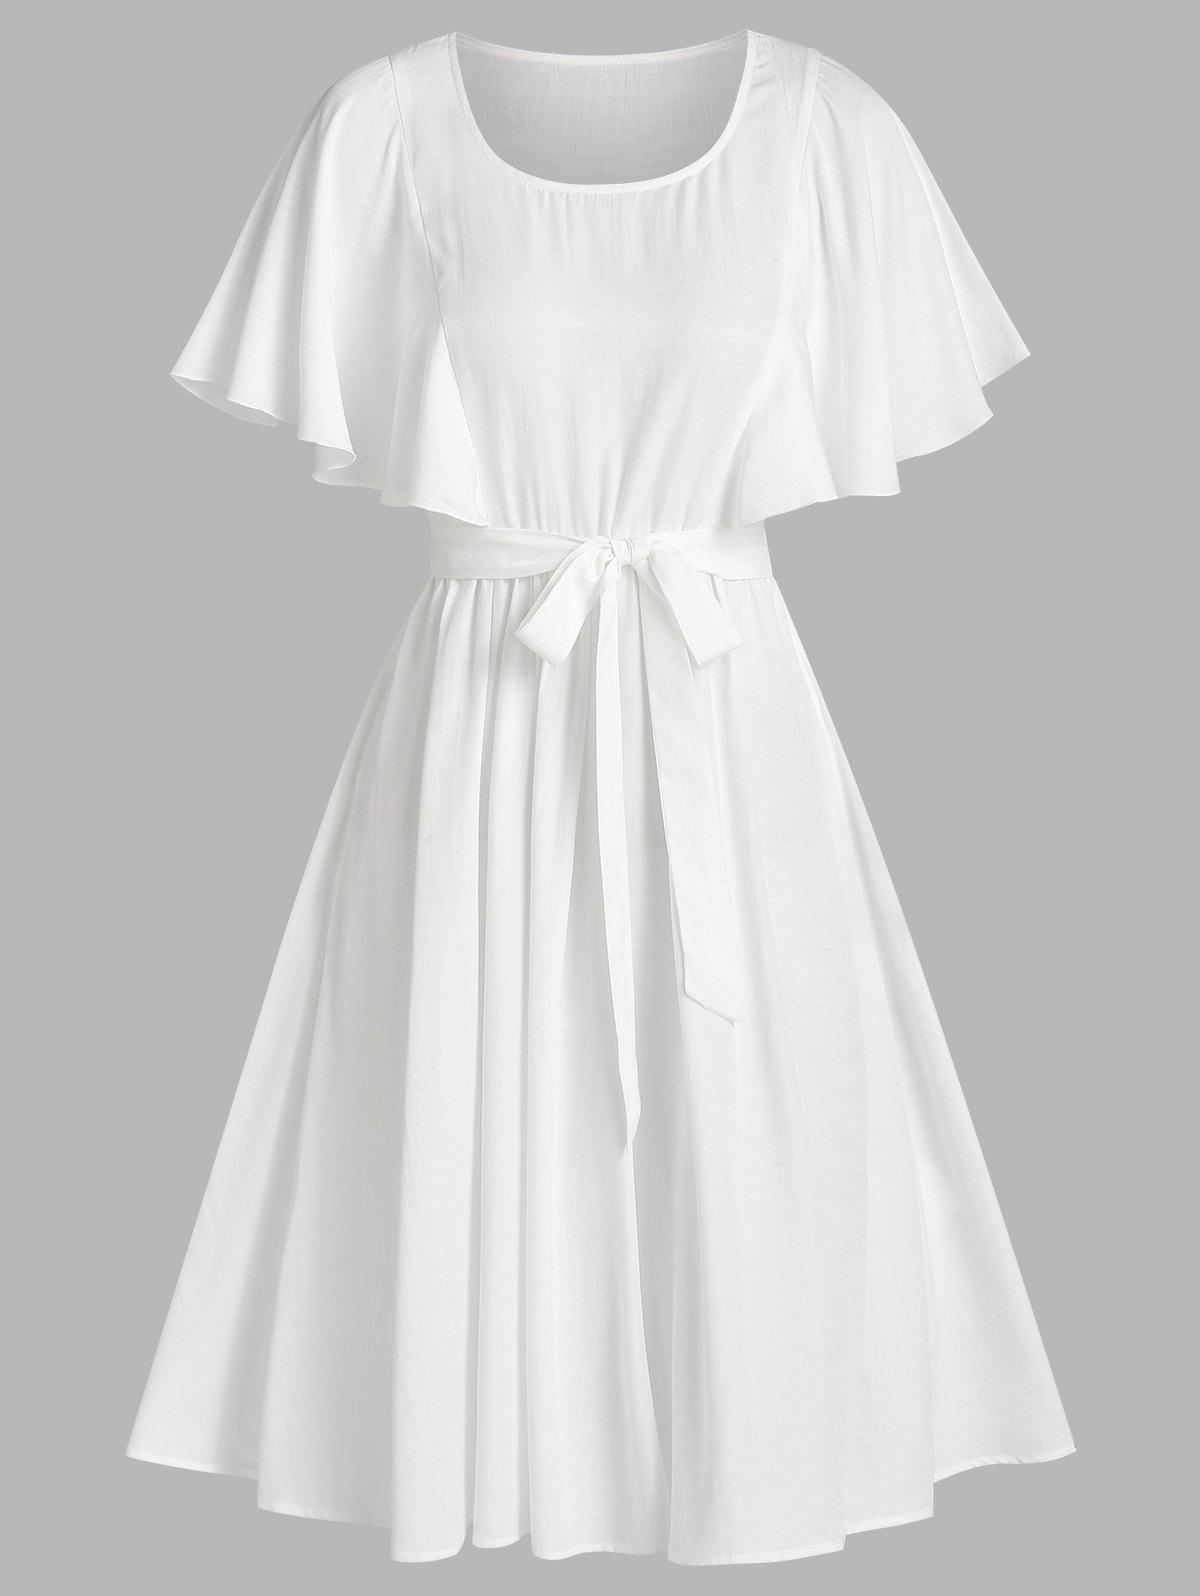 Flutter Sleeve Belted Casual Dress - WHITE M